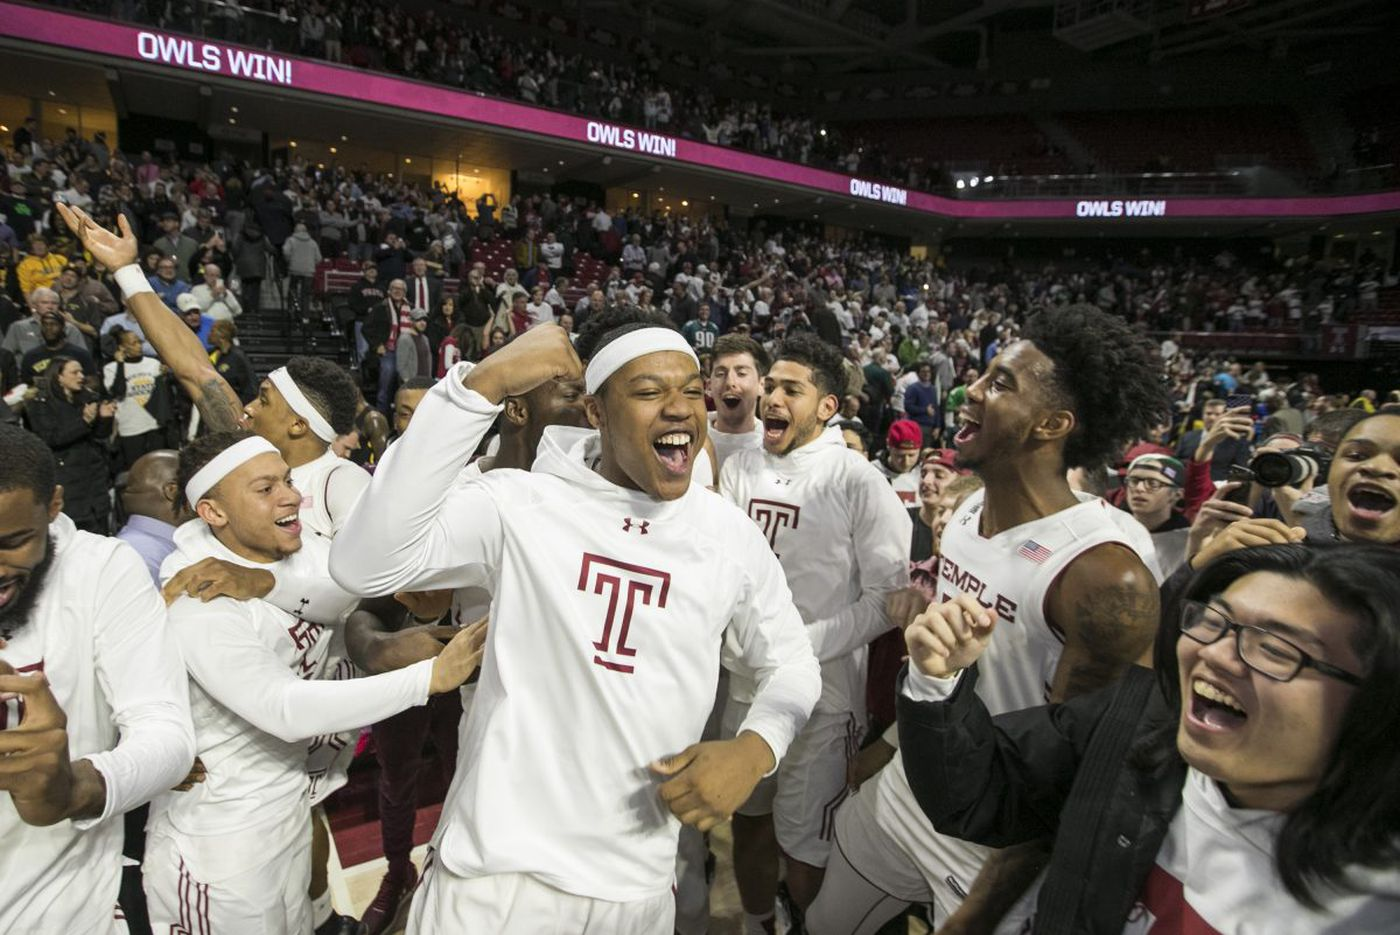 Temple earns upset victory over 16th-ranked Wichita State